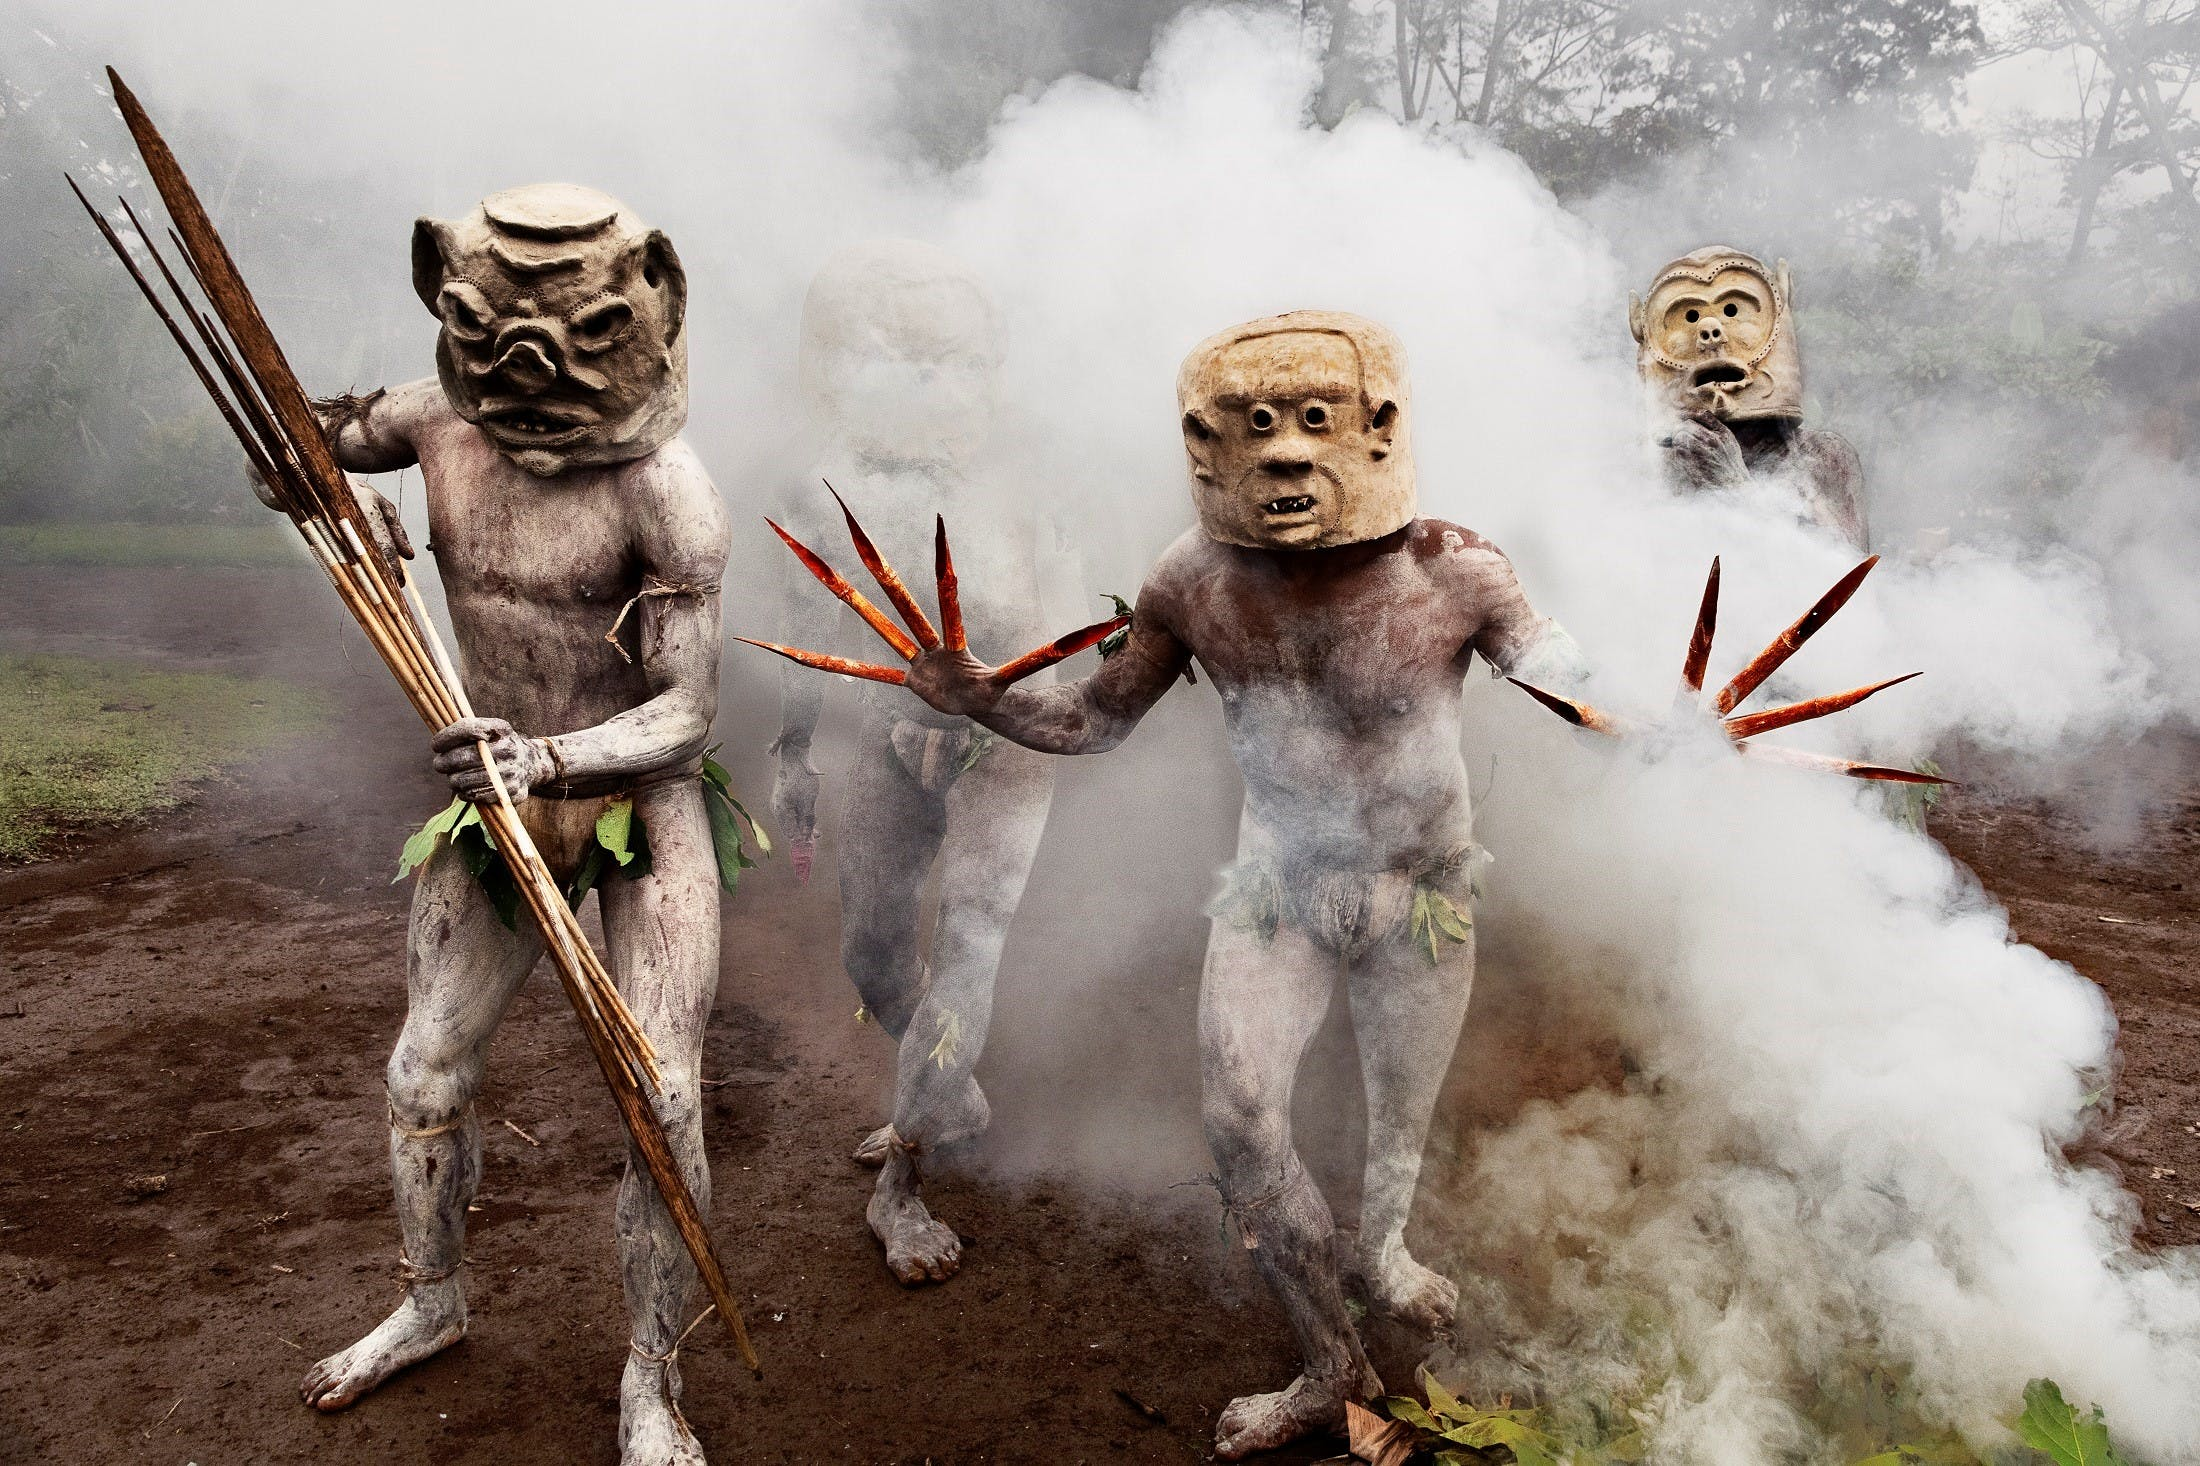 Steve McCurry in Papua New Guinea